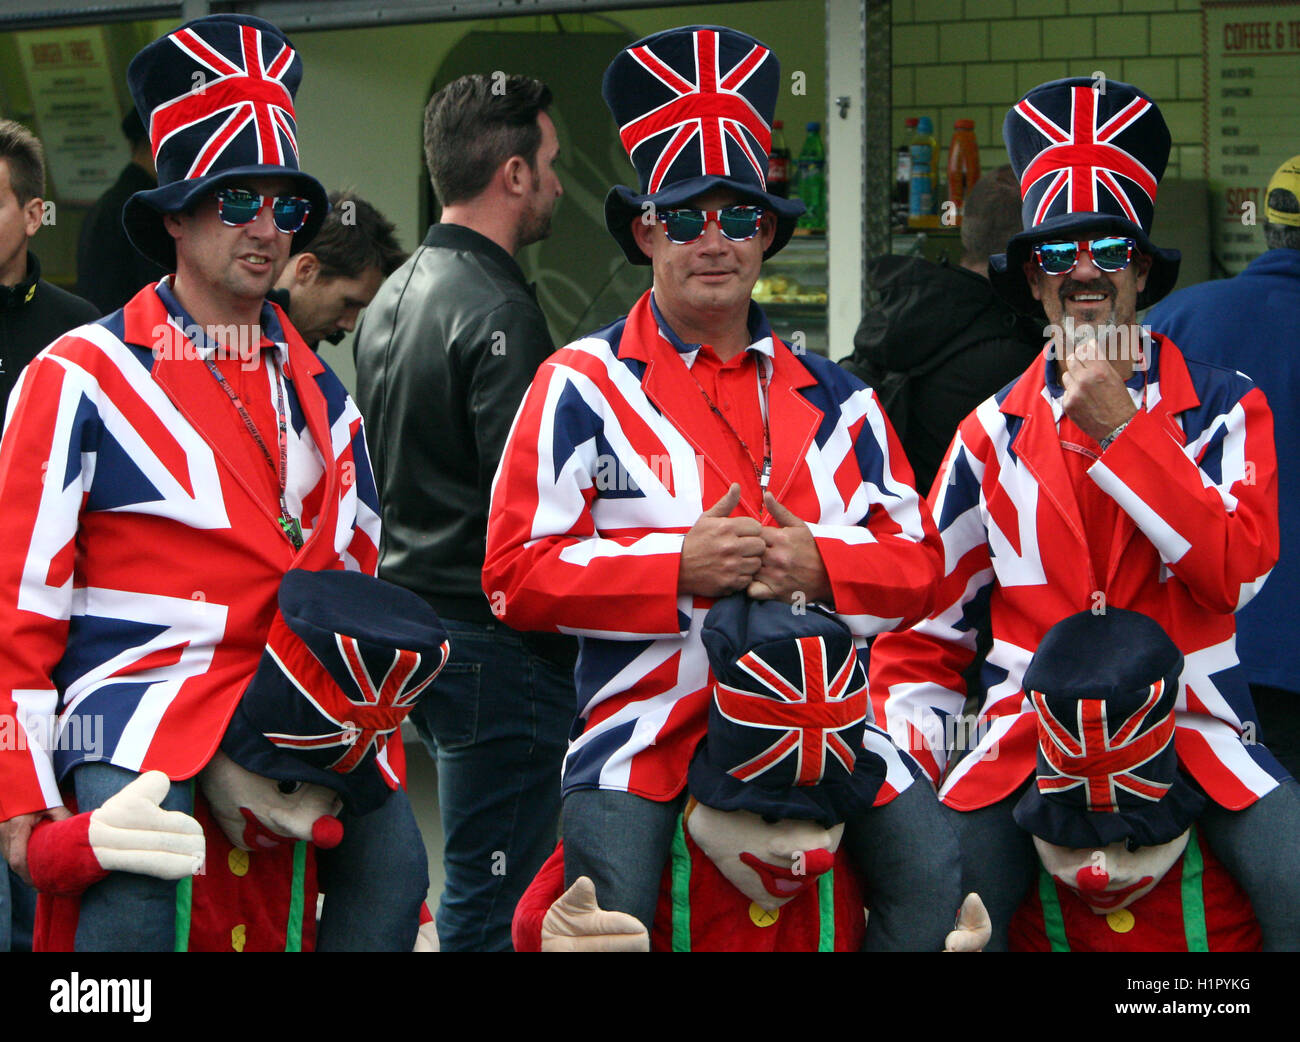 Three British Fans Supporting Great Britain Team Competition in their Union Jack Fancy Dress and Top Hats - Stock Image